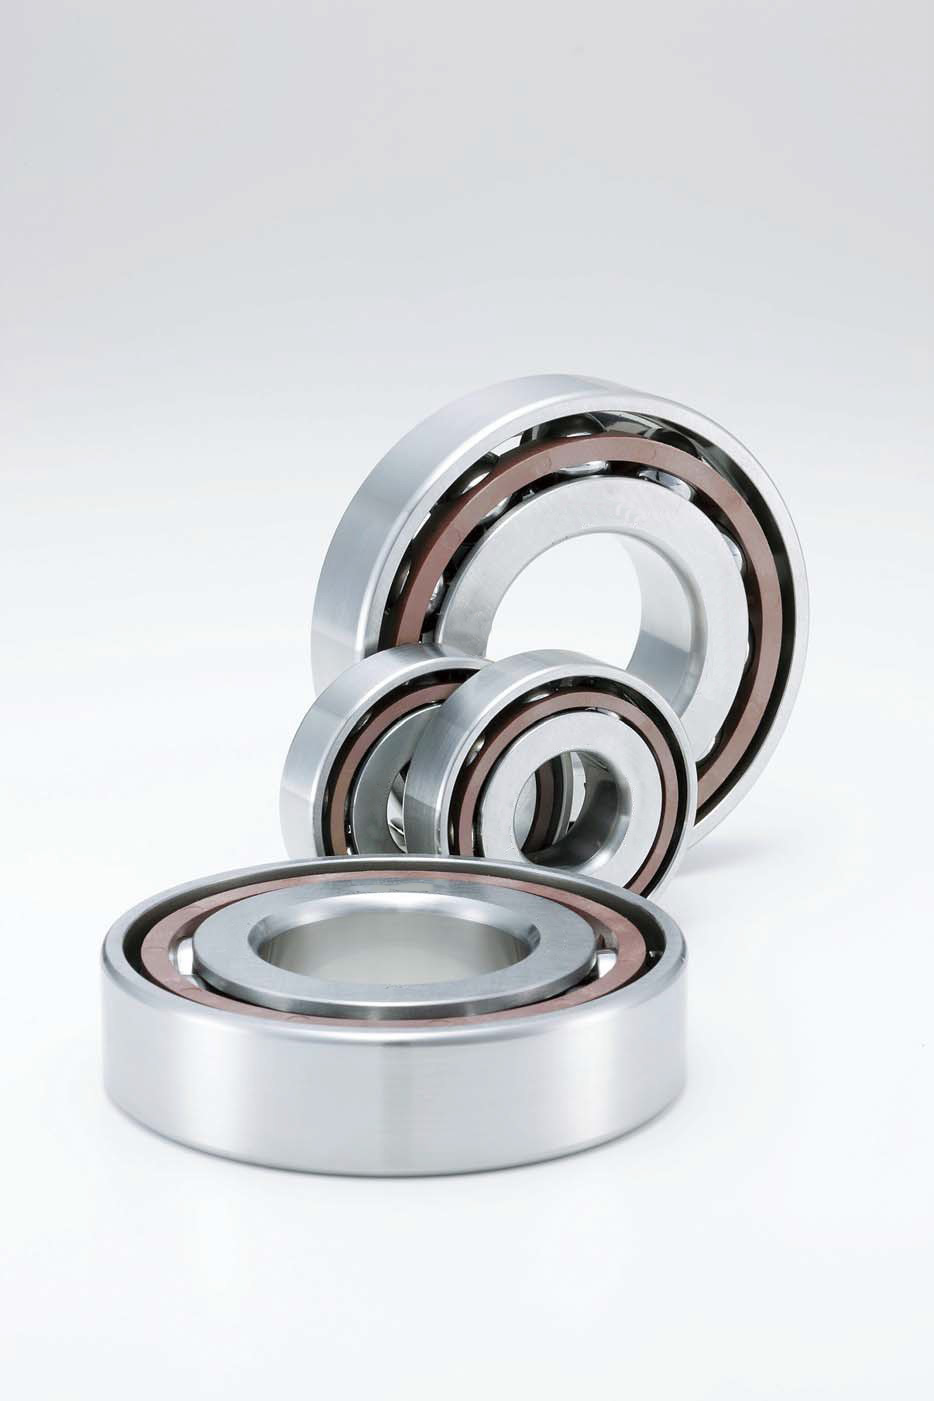 7005C TYN SUL P4 Spindle Angular Contact Ball Bearings ABEC-7 7005 7005C 7005AC 25x47x12 SUPER PRECISION BEARING 1pcs mochu 7005 7005c 7005c p5 25x47x12 angular contact bearings spindle bearings cnc abec 5